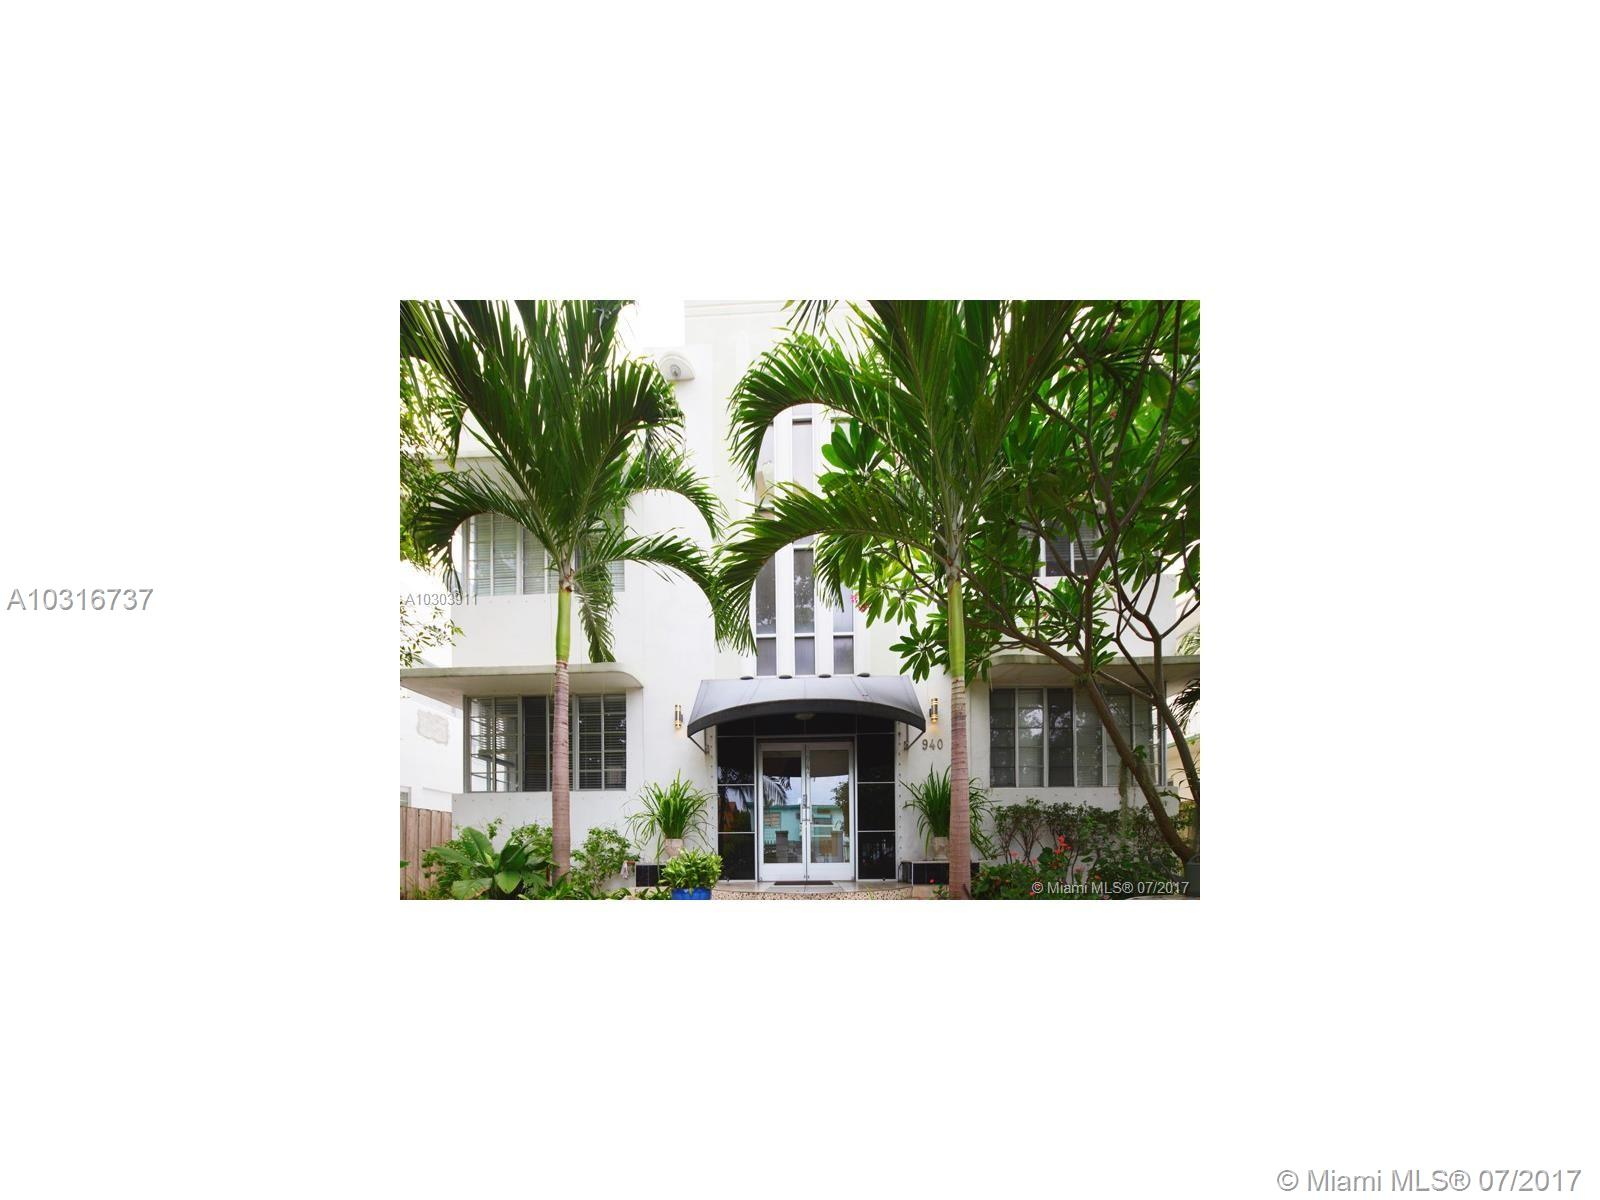 940 Jefferson Ave # 1, Miami Beach, FL 33139